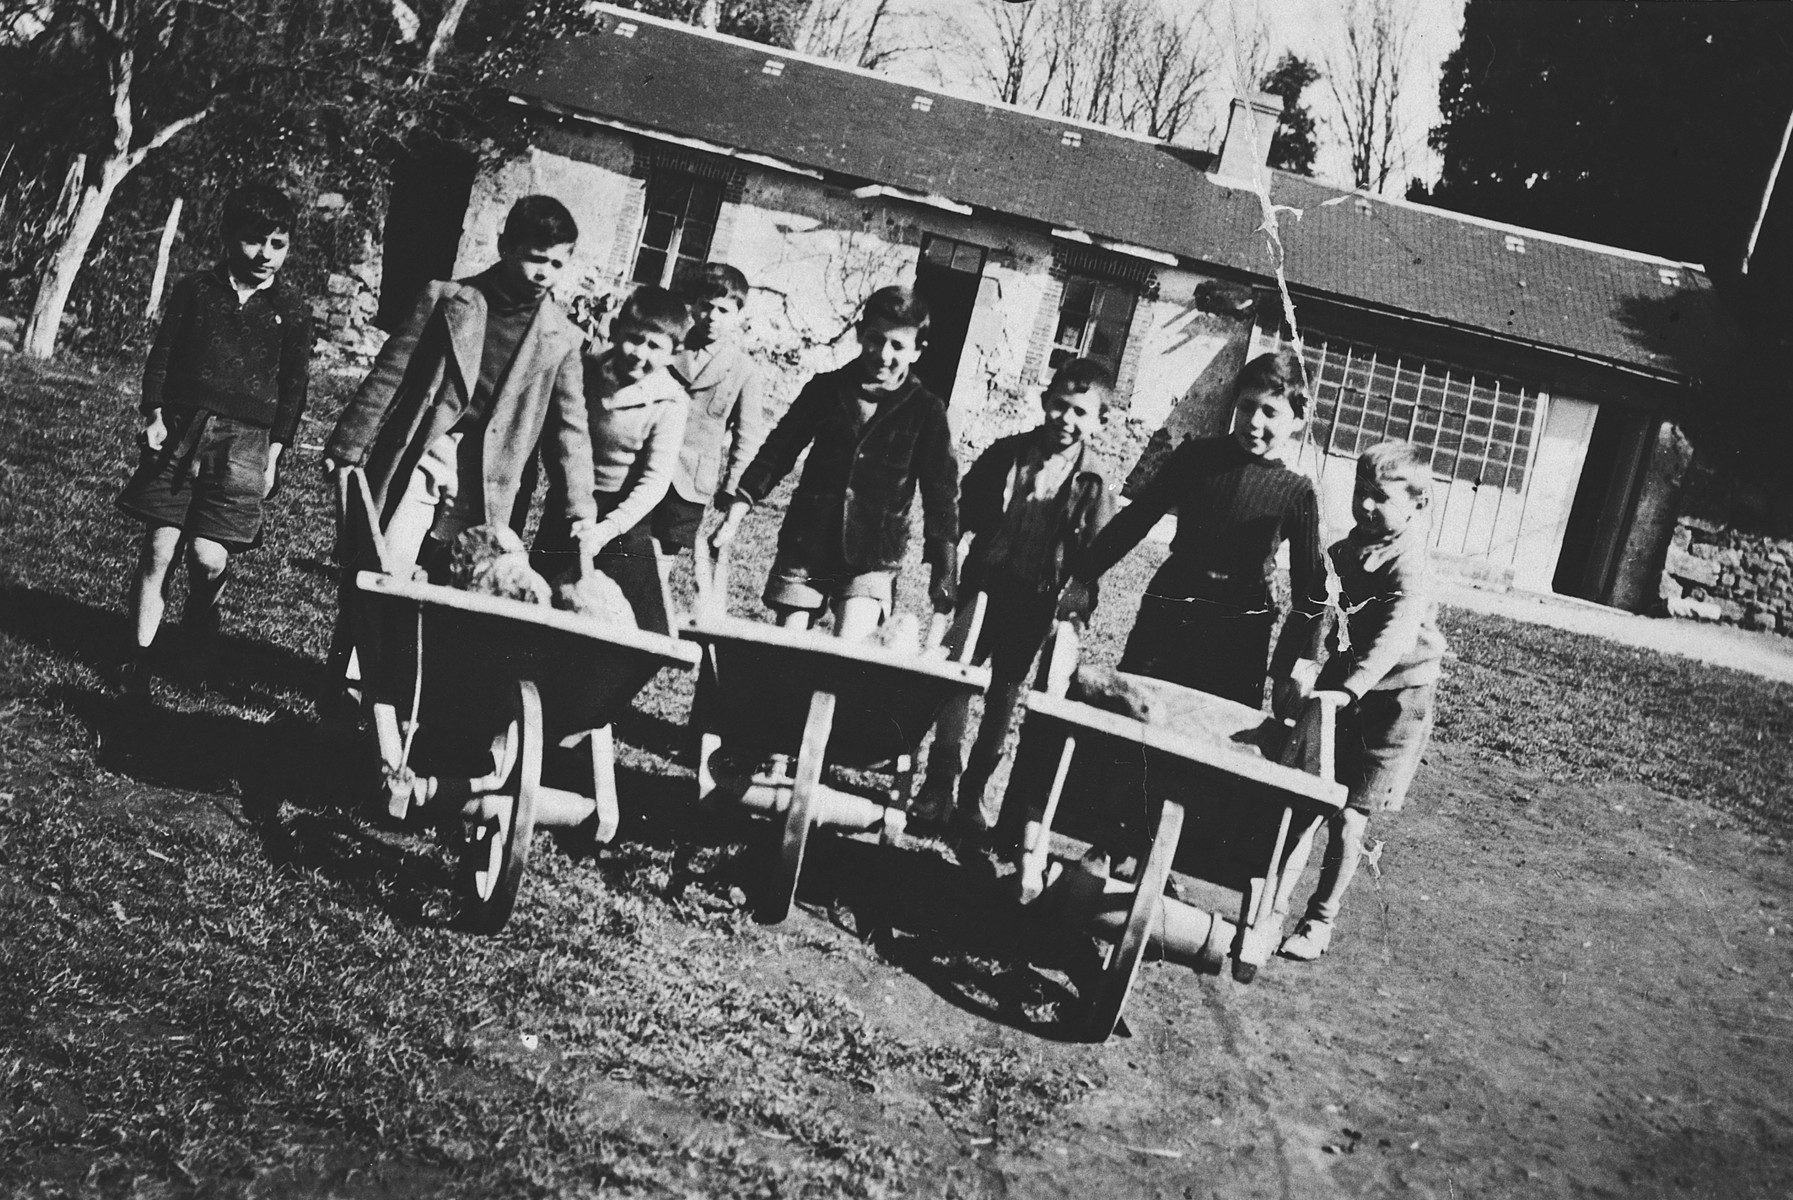 A group of children pushes wheelbarrows on the grounds of the Masgelier children's home in France.  Among those pictured is Israel Lichtenstein.